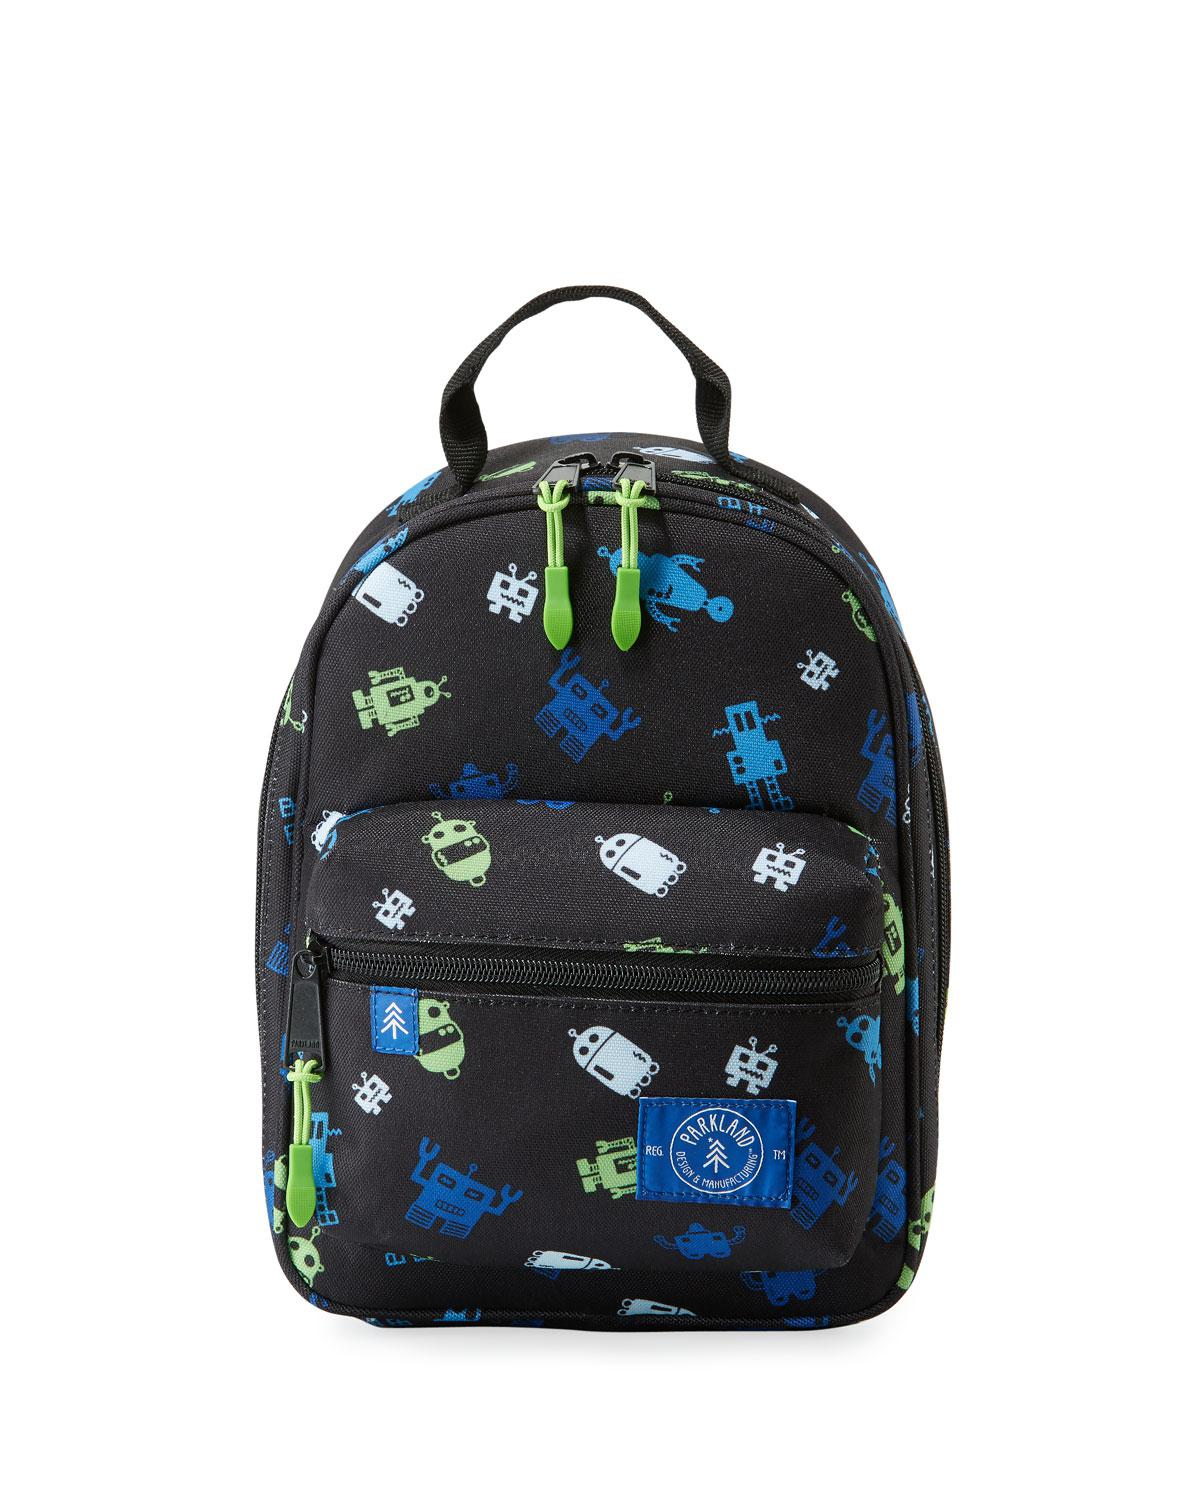 4e9a6ceacc Parkland Rodeo Robot-print Lunch Box in Blue - Lyst